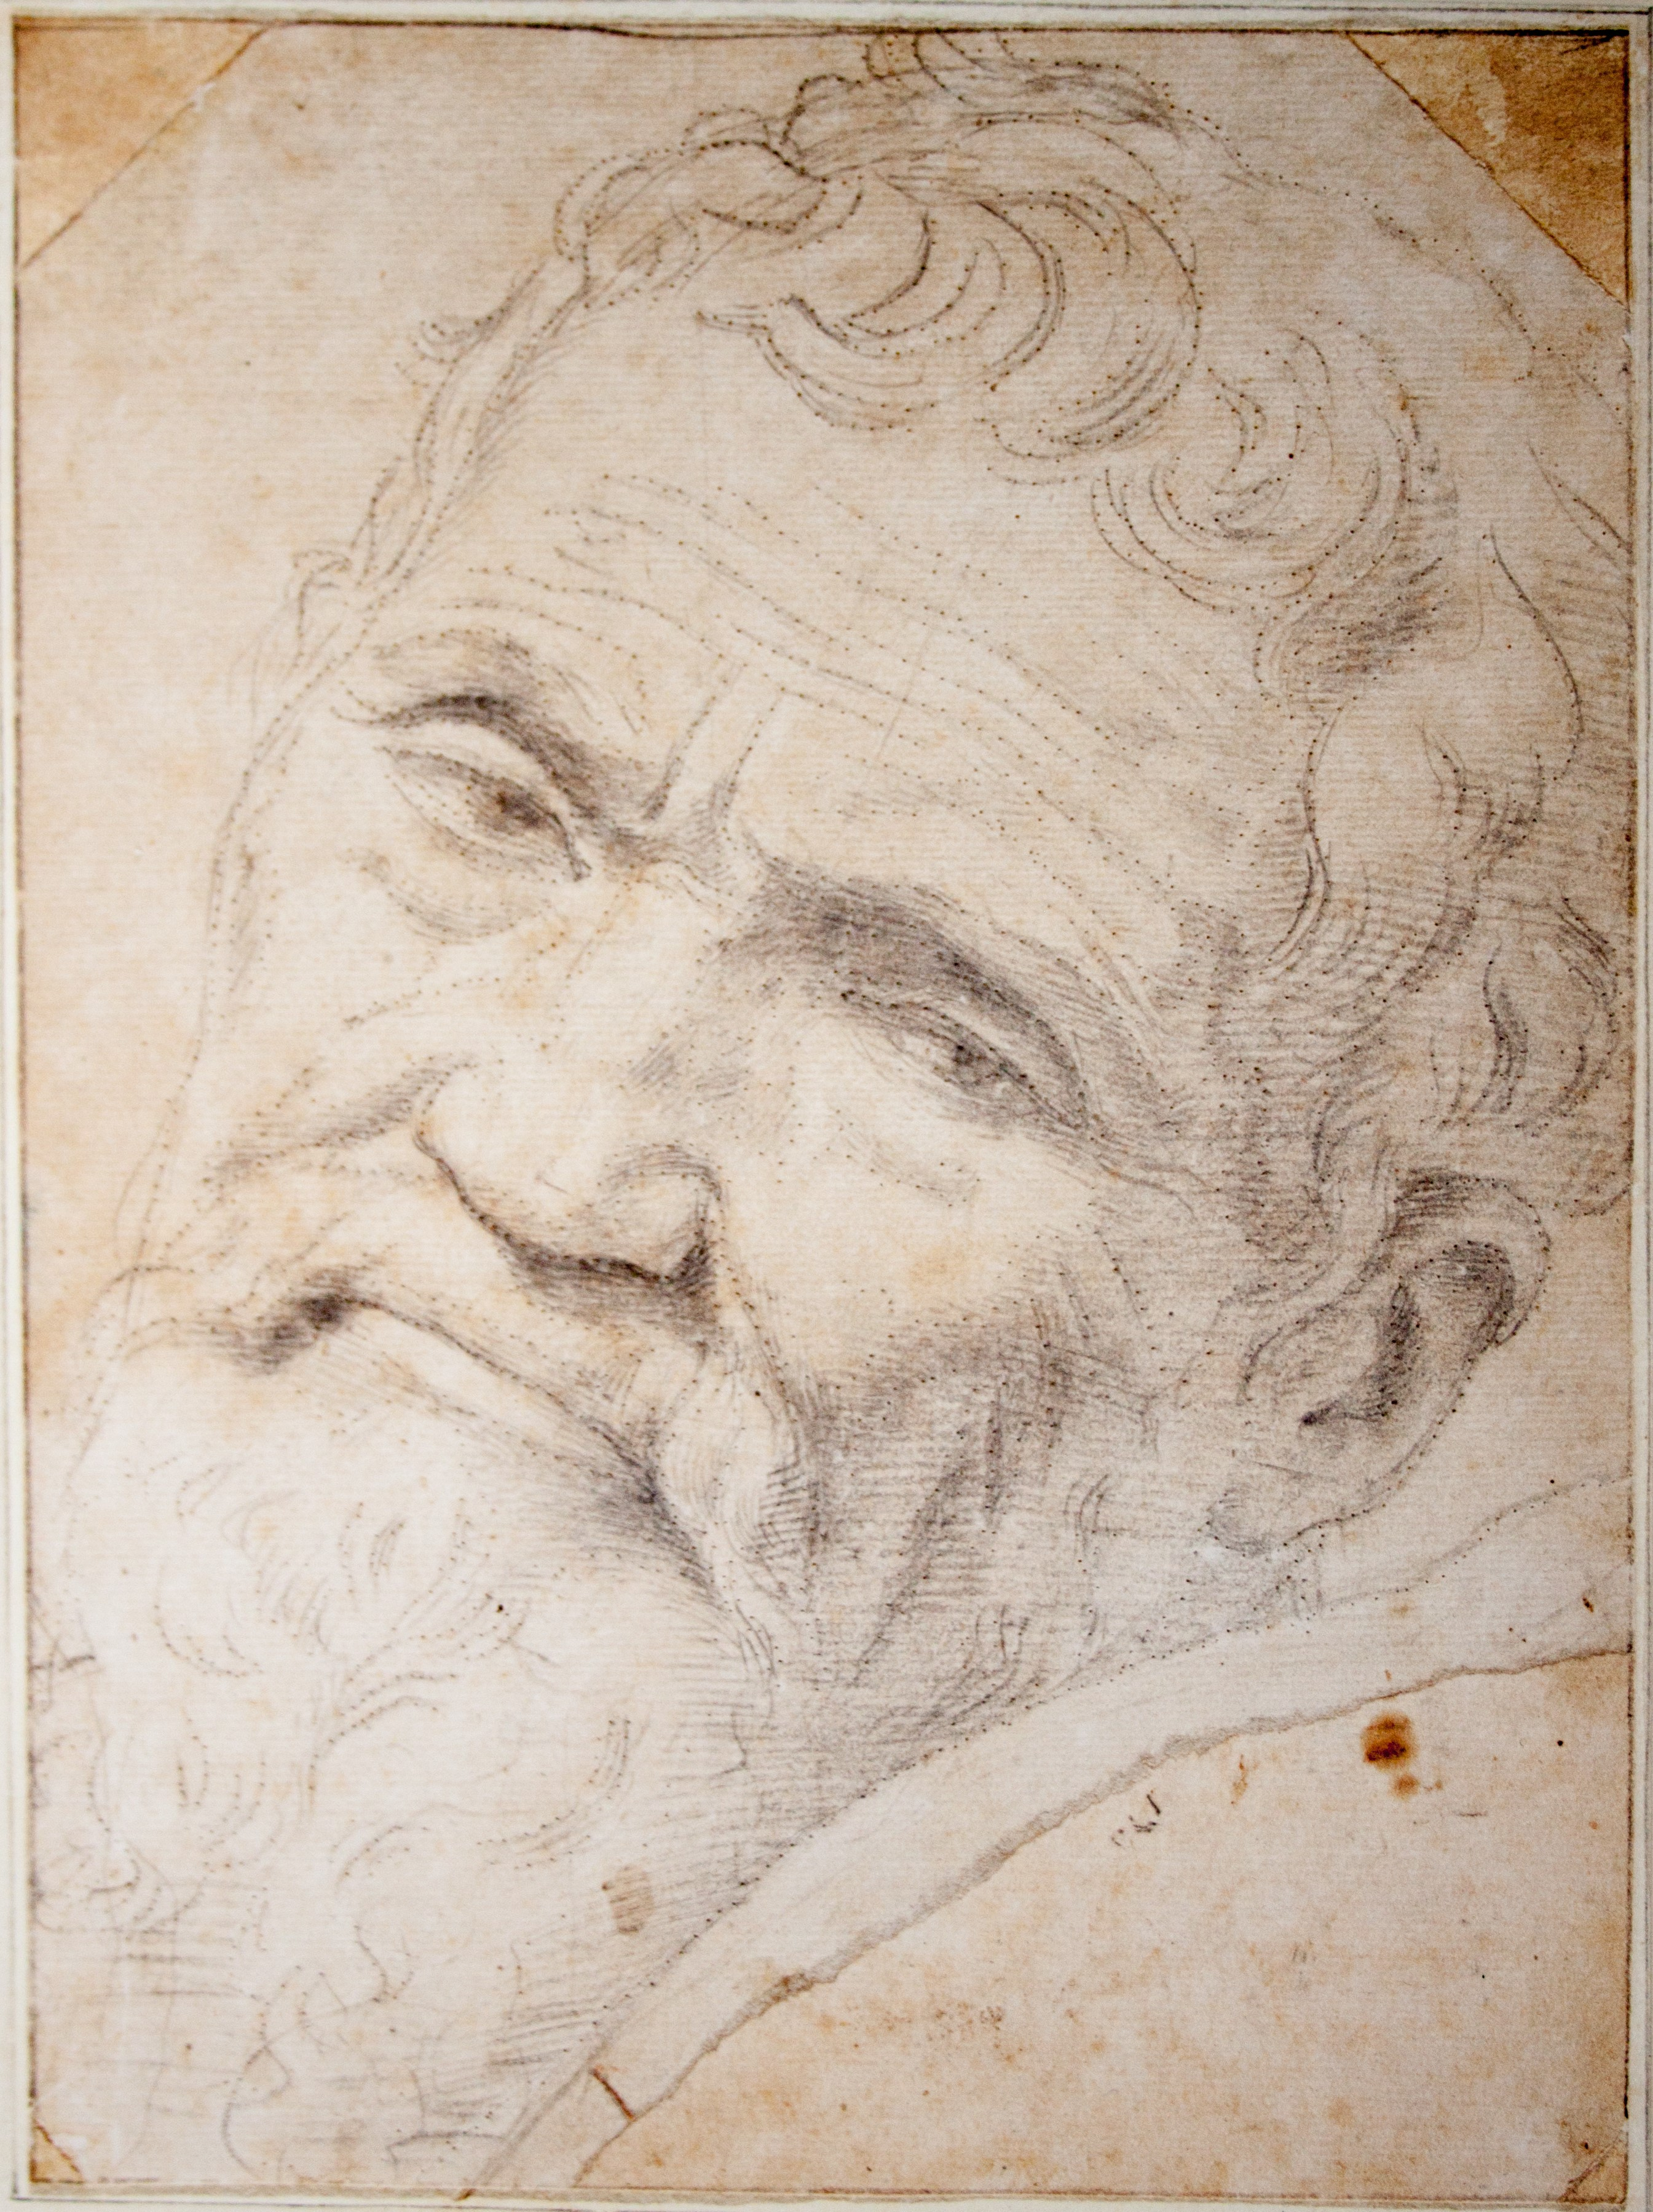 Michelangelo quotes and images